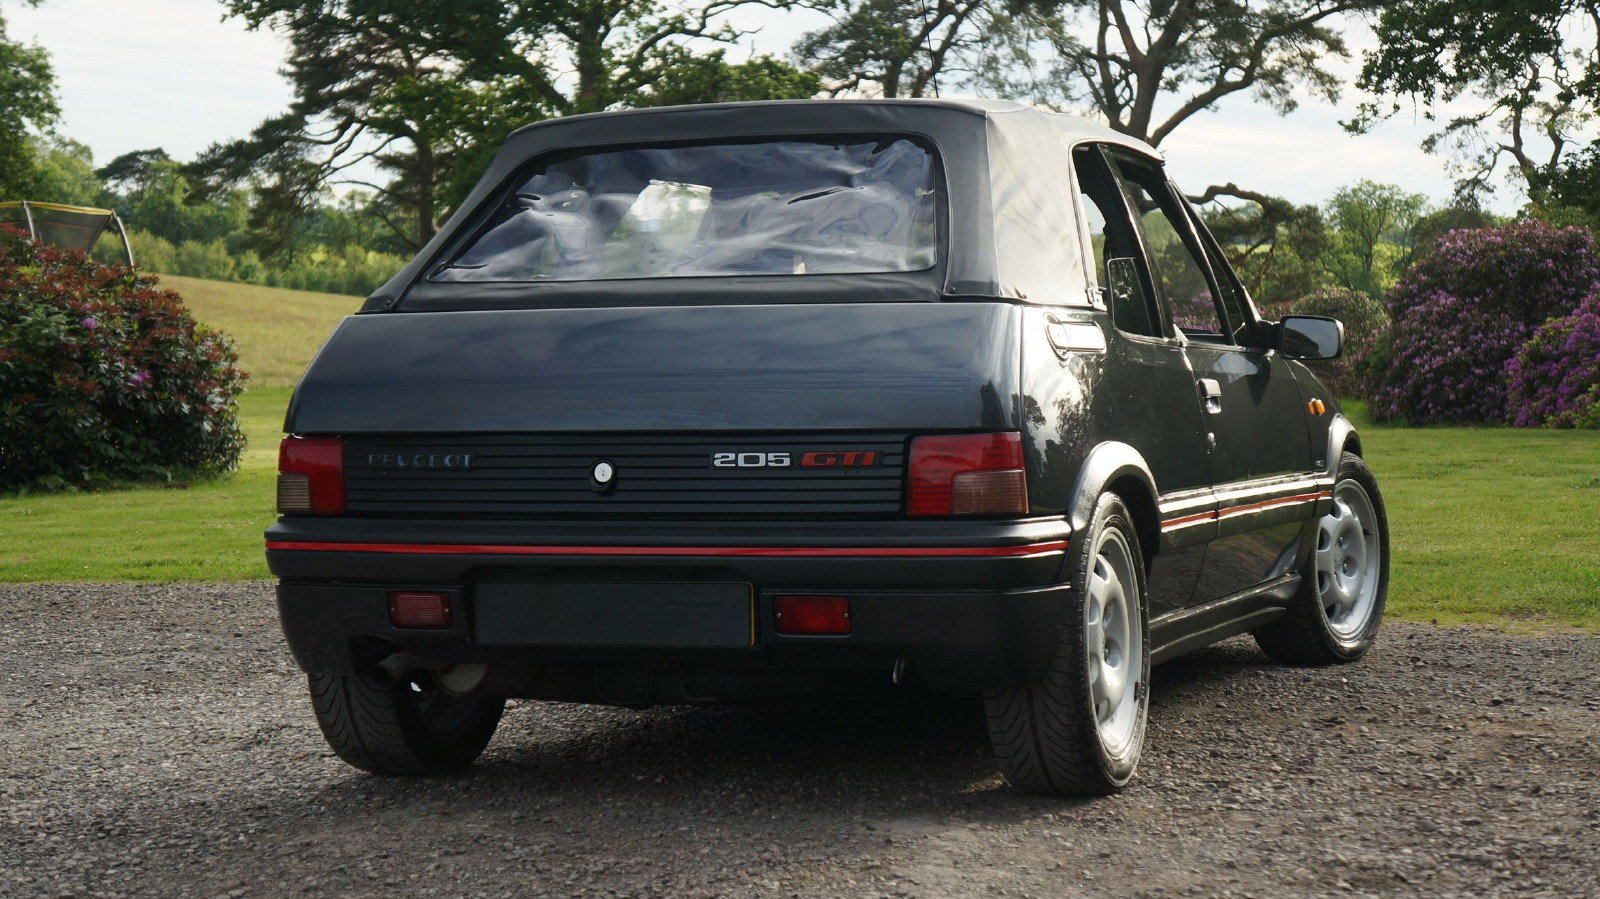 1993 Peugeot 205 CTi 1.9 GTI Convertible Cabriolet For Sale (picture 3 of 6)